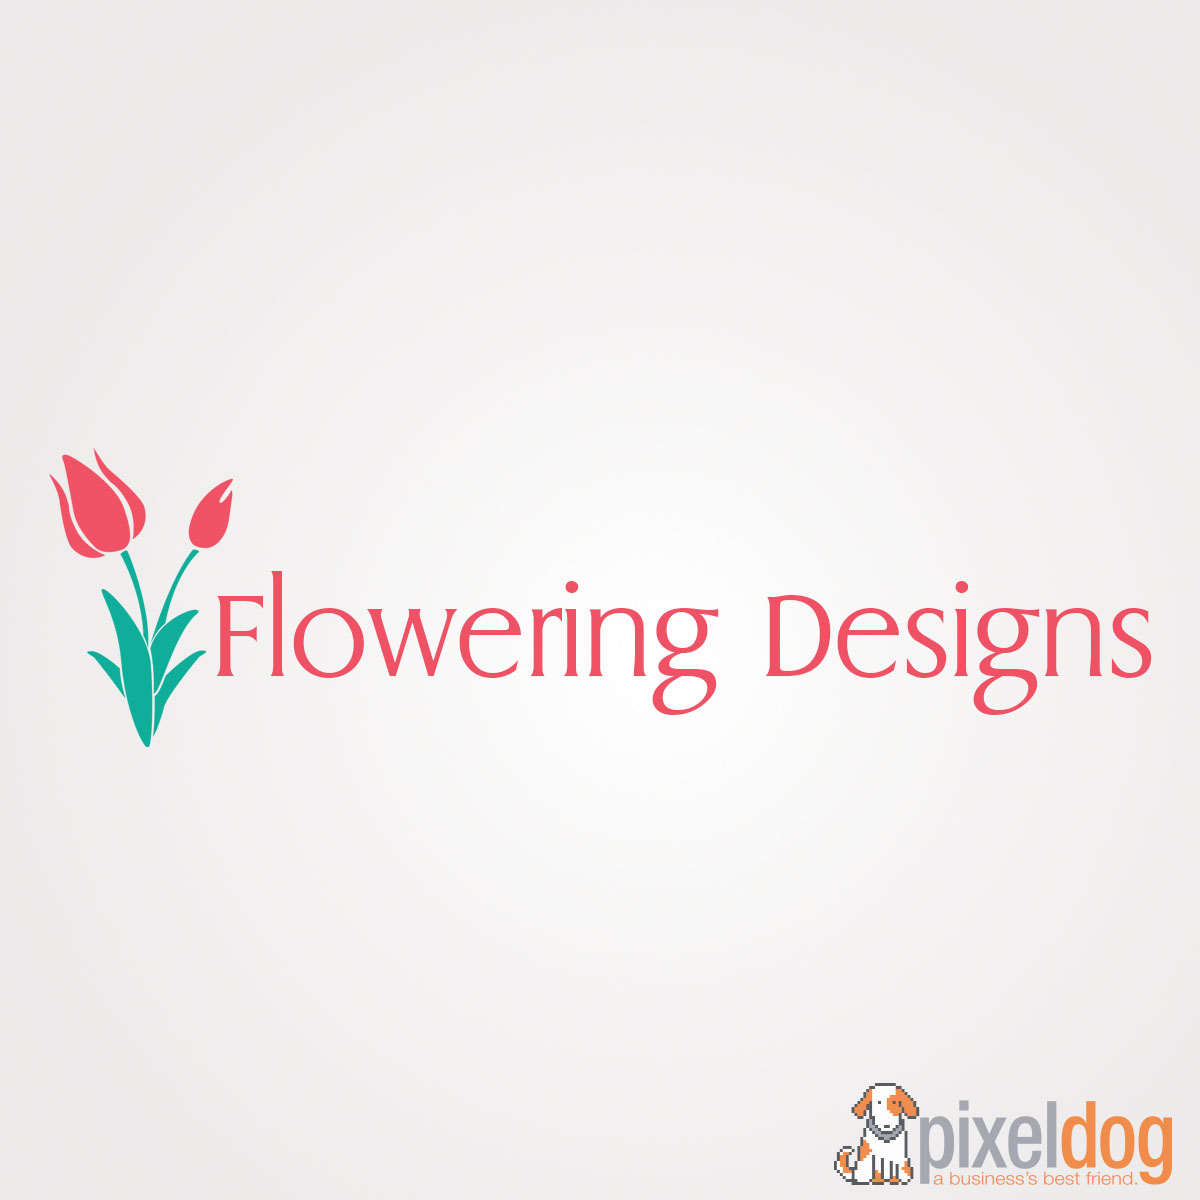 Flowering Designs (Company)